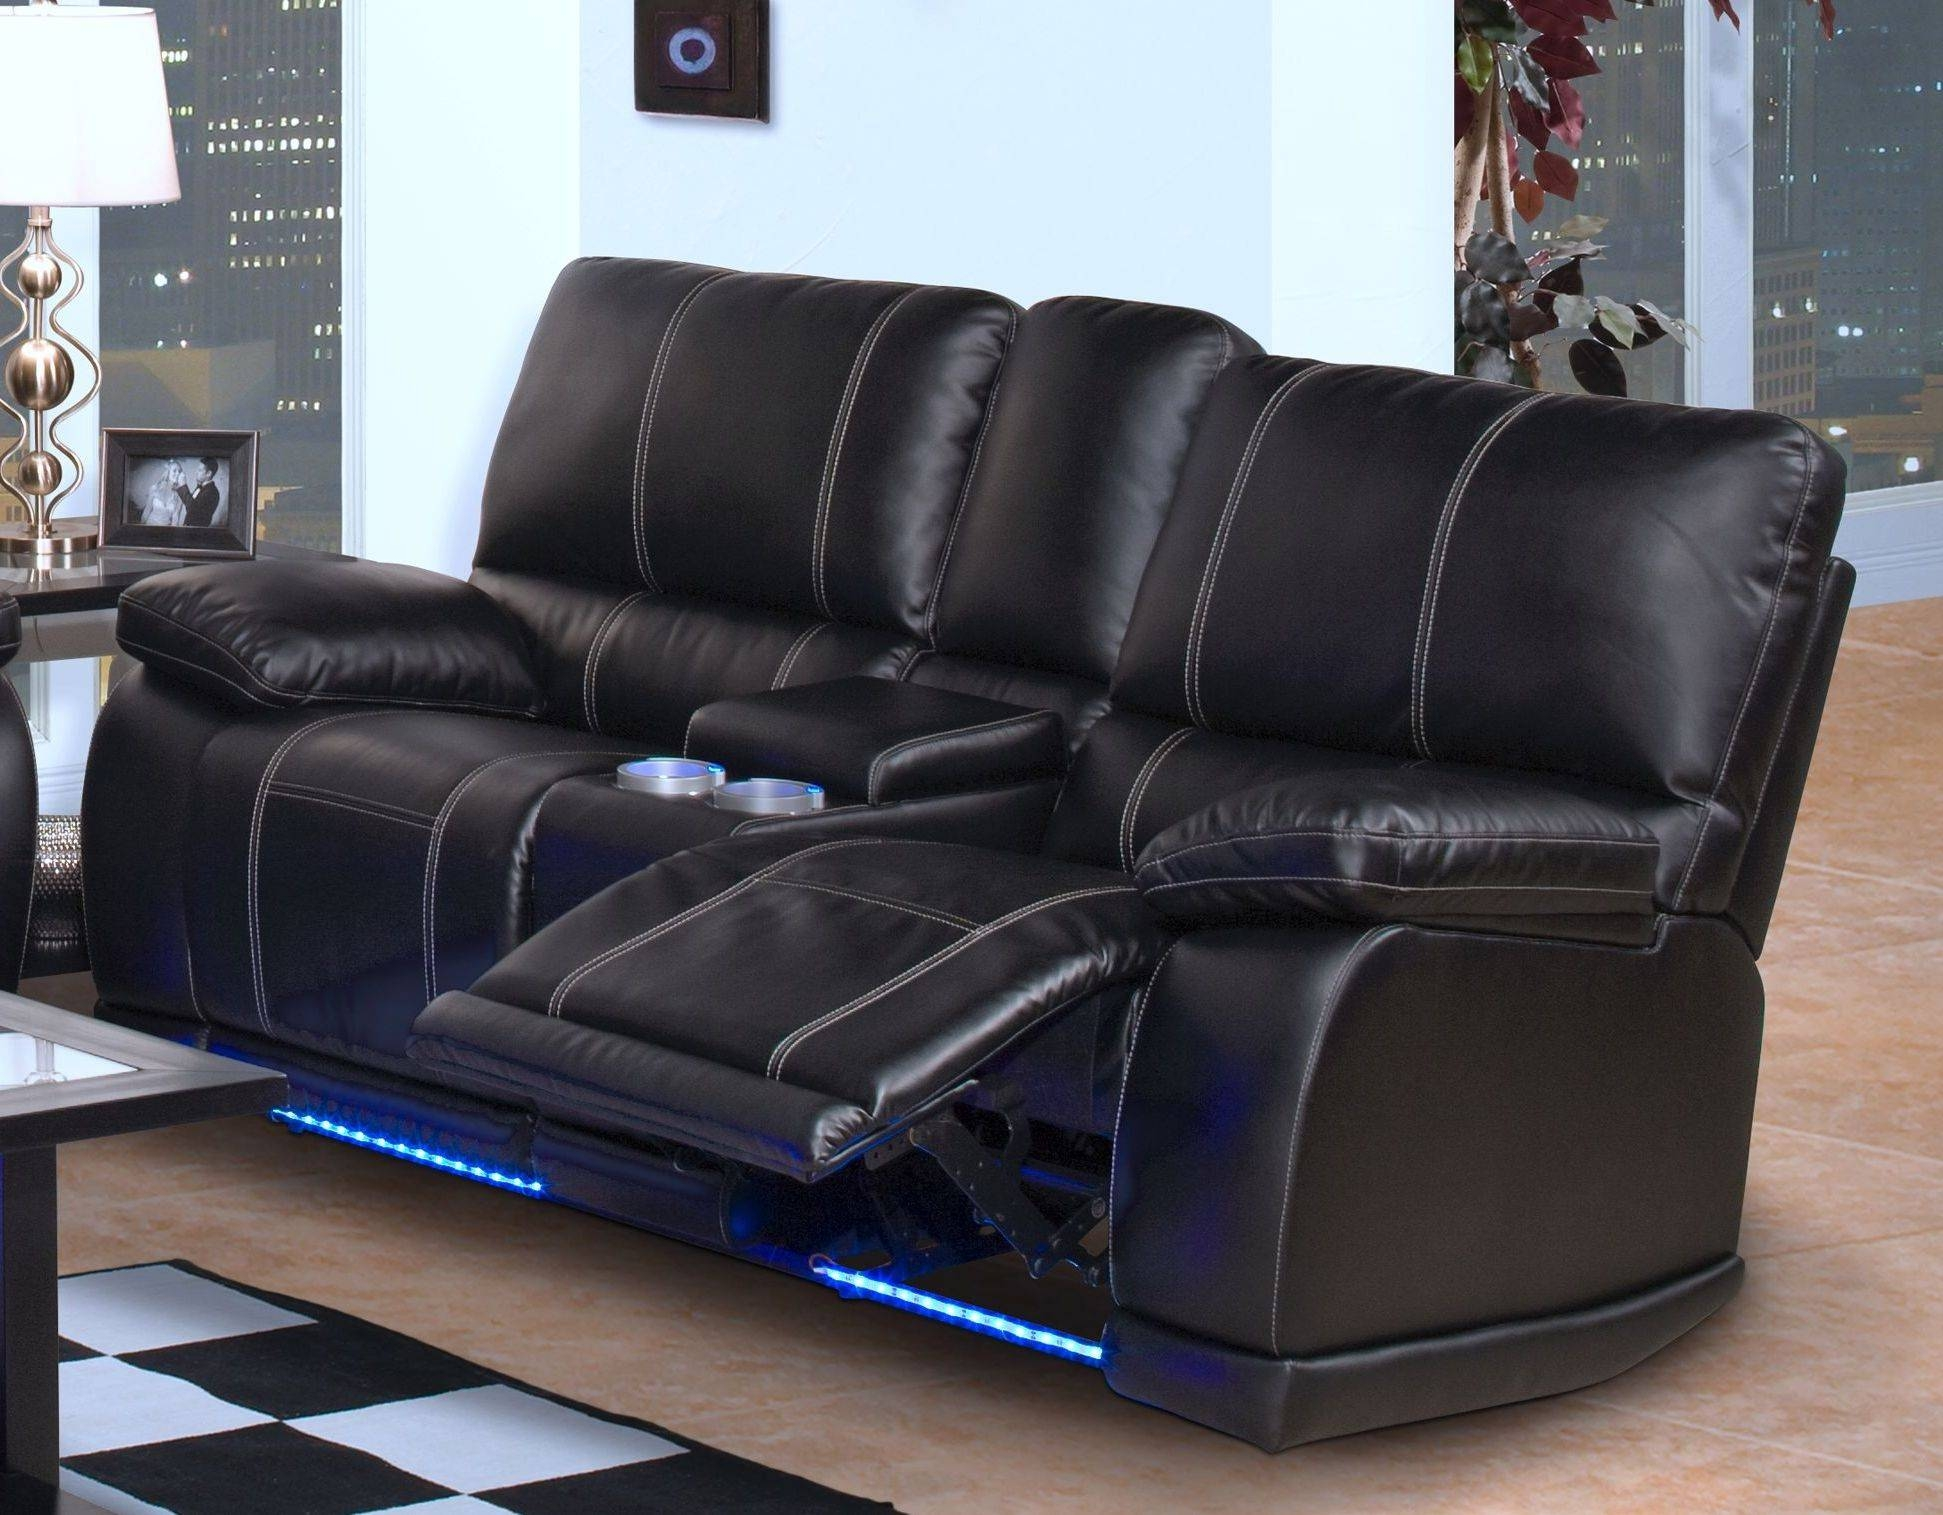 Fancy Leather Reclining Sofa 72 On Sofas And Couches Ideas With within Fancy Sofas (Image 4 of 30)